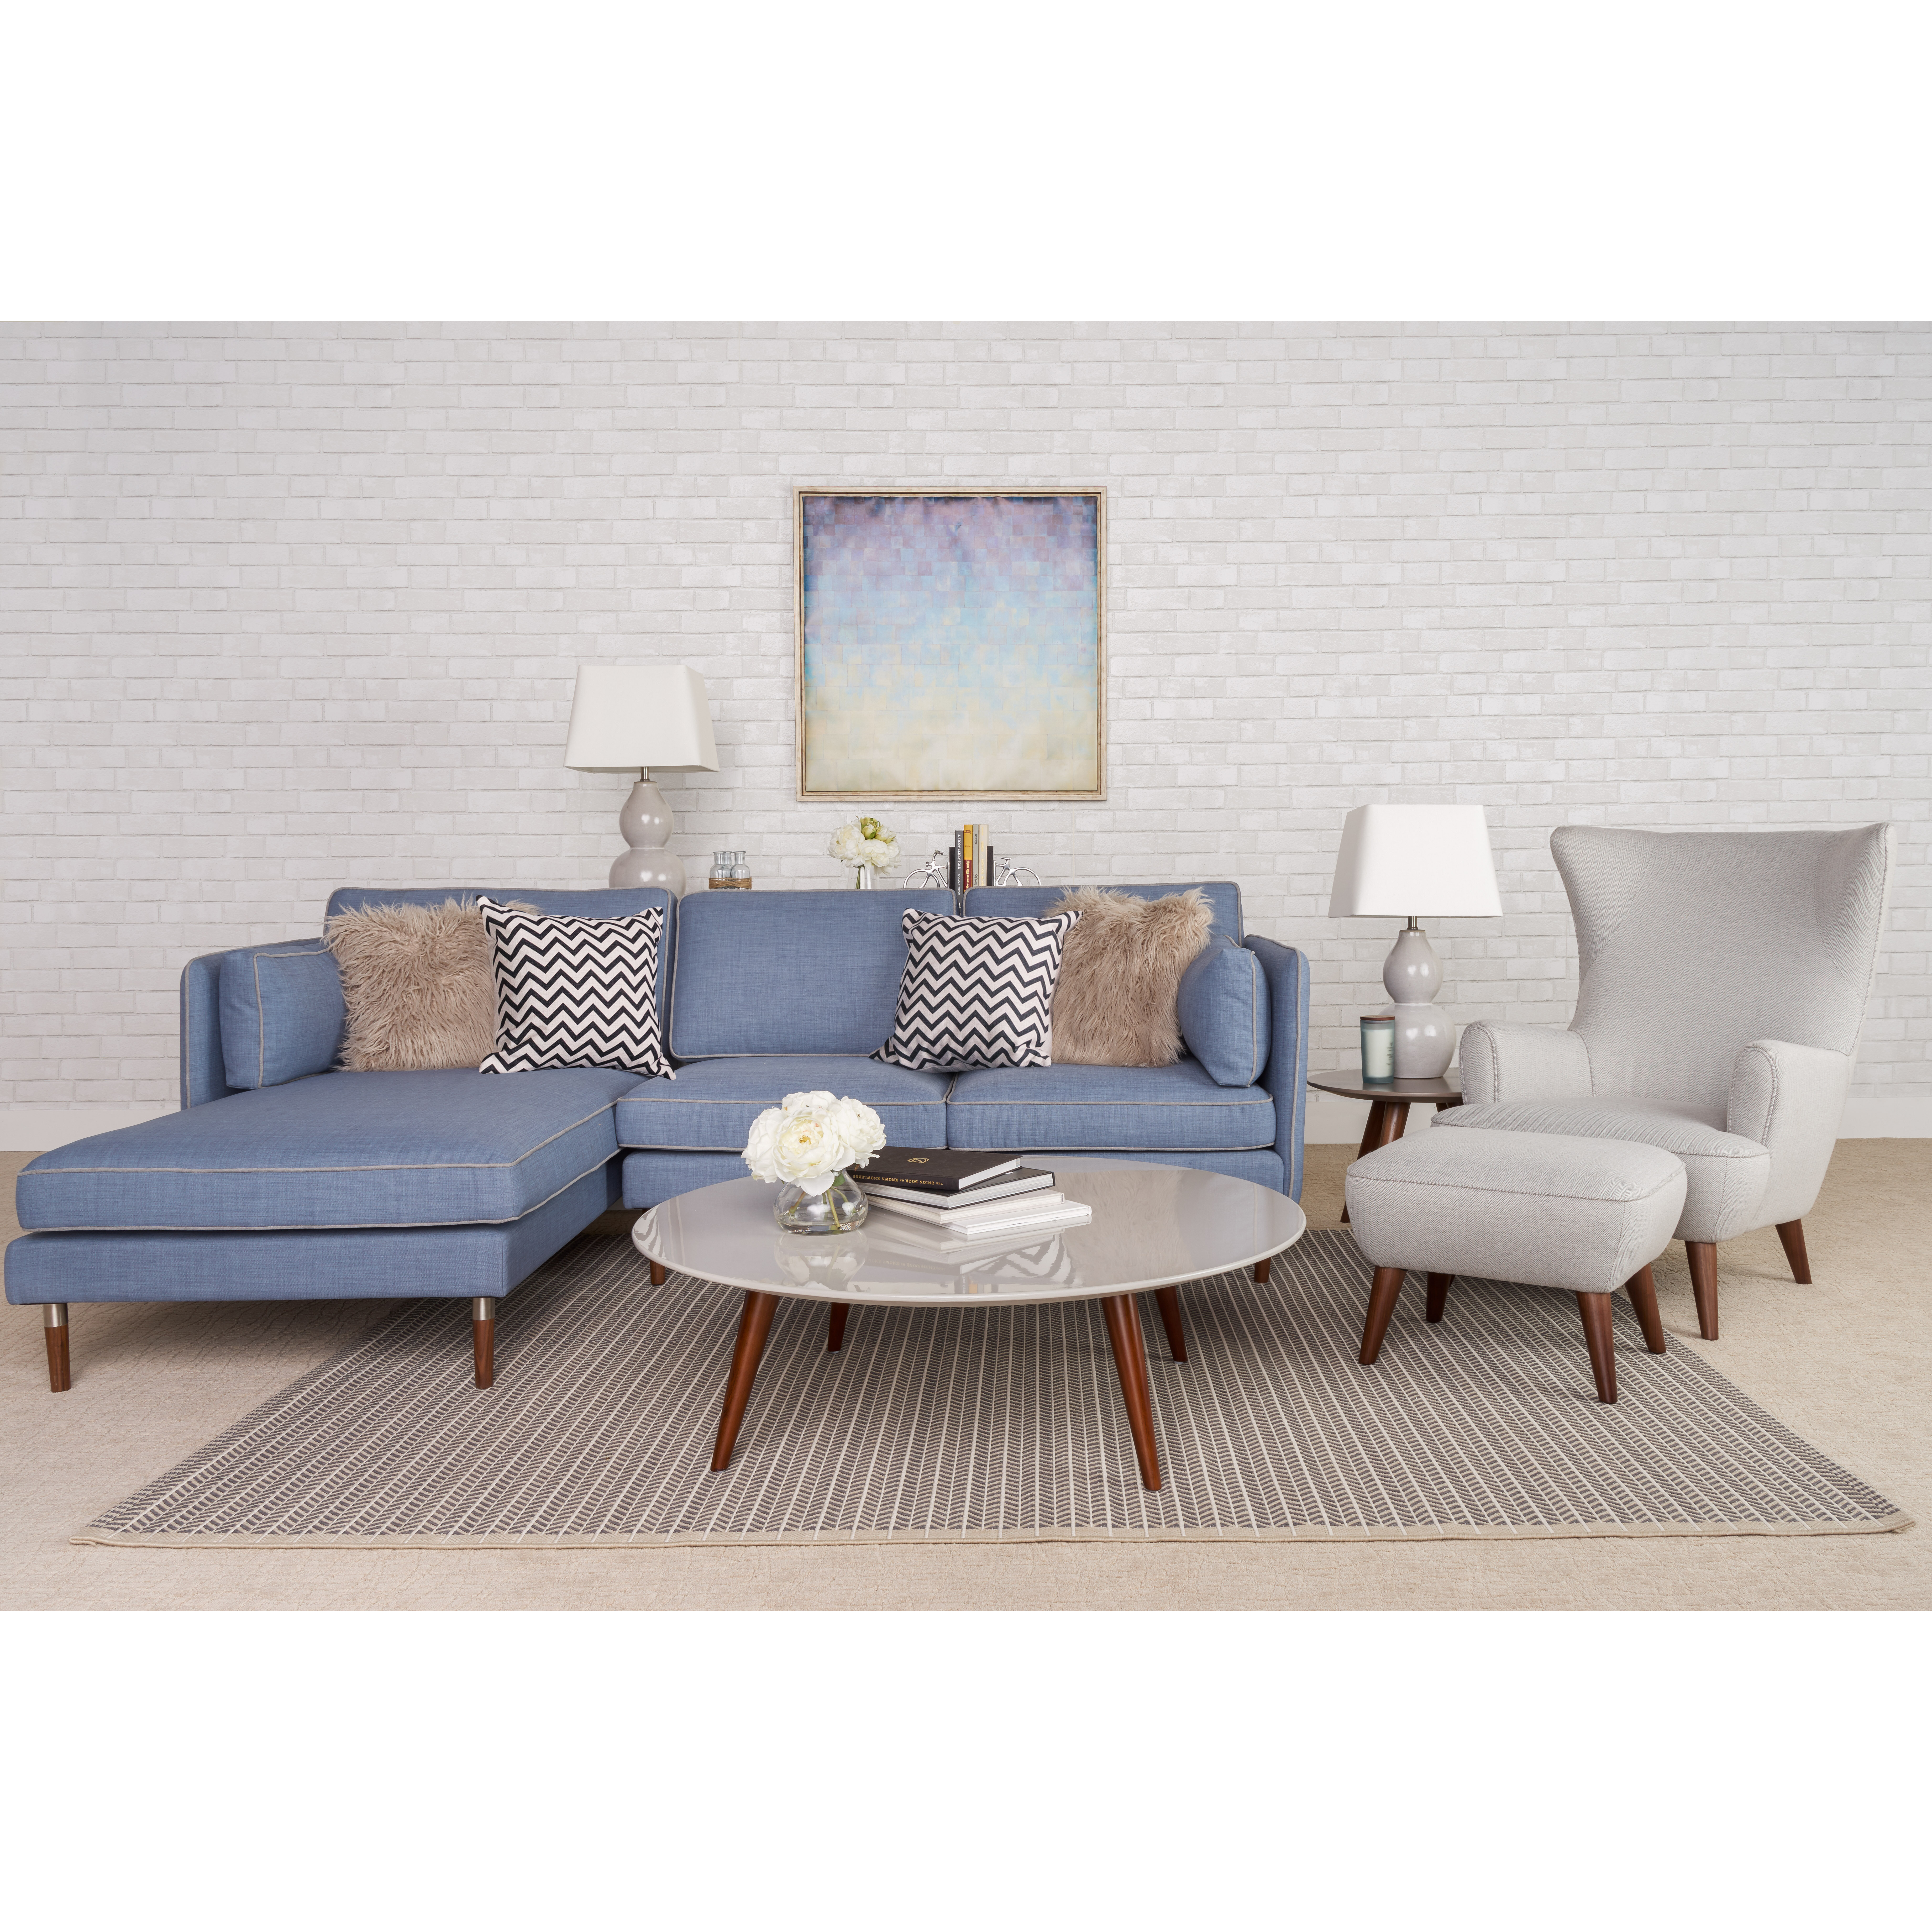 Corrigan Studio Shelburne 5 Piece Living Room Set | Wayfair